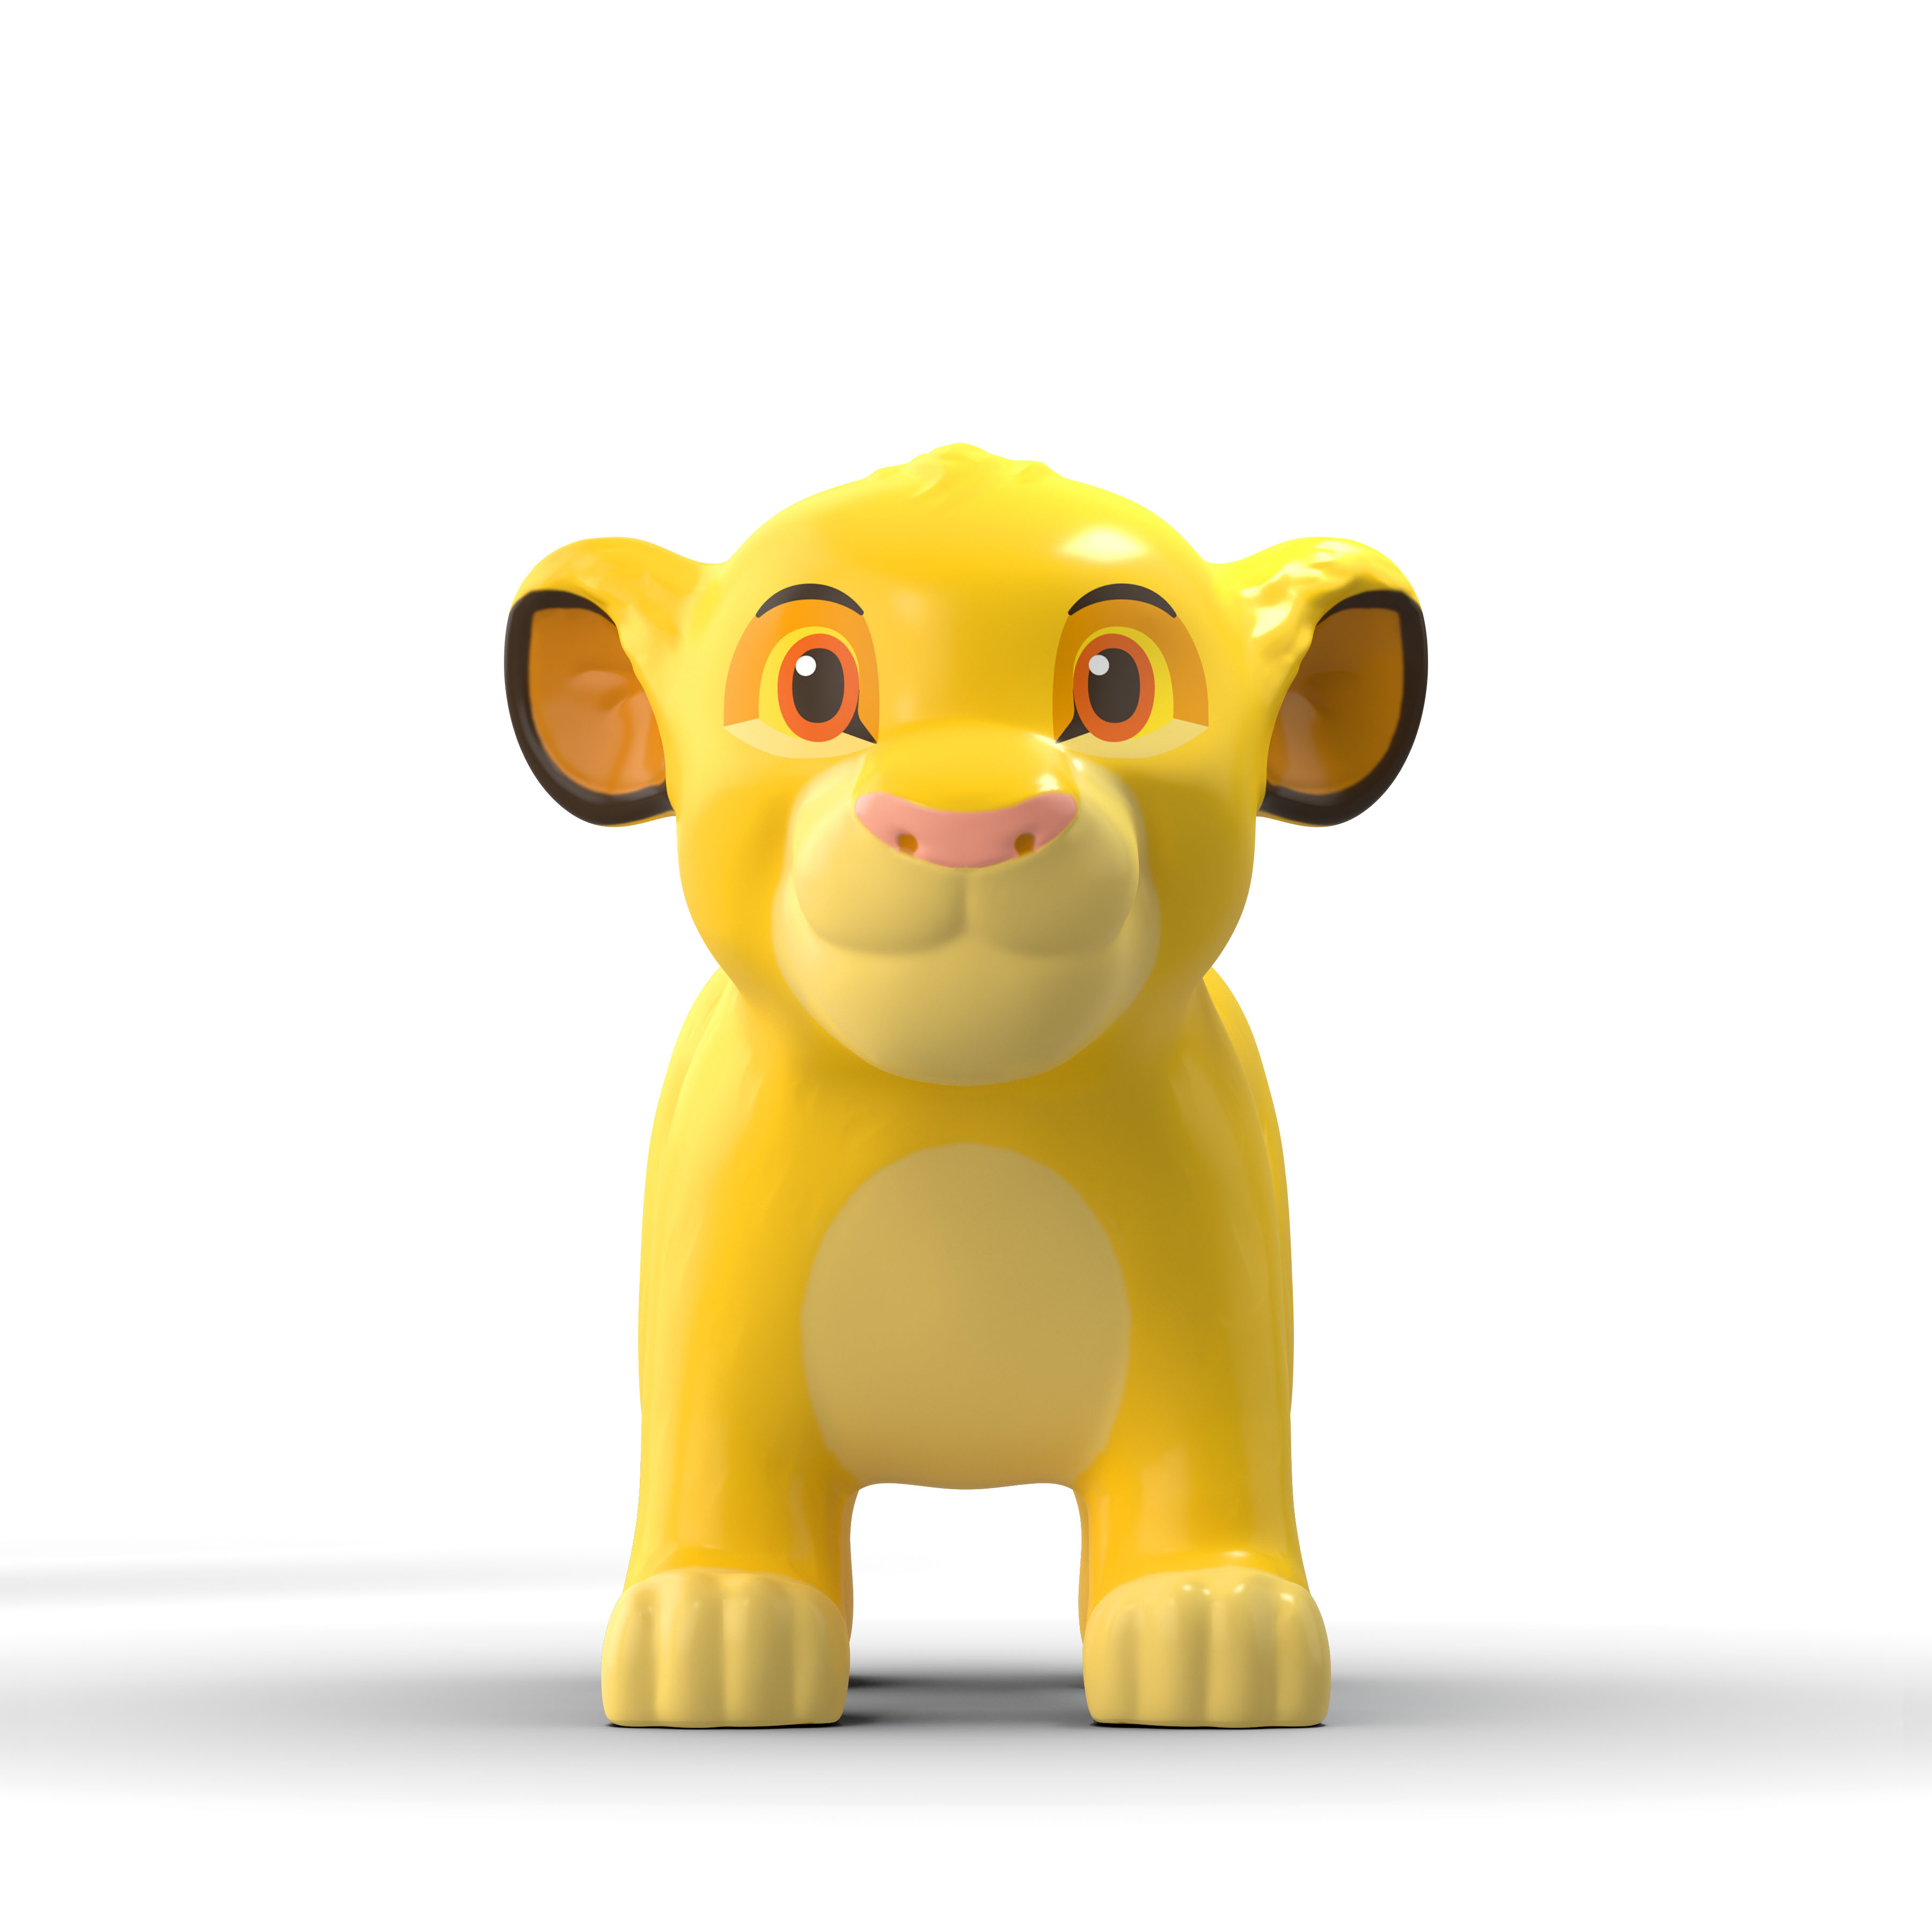 Disney's Simba character inflatable toy concept rendering